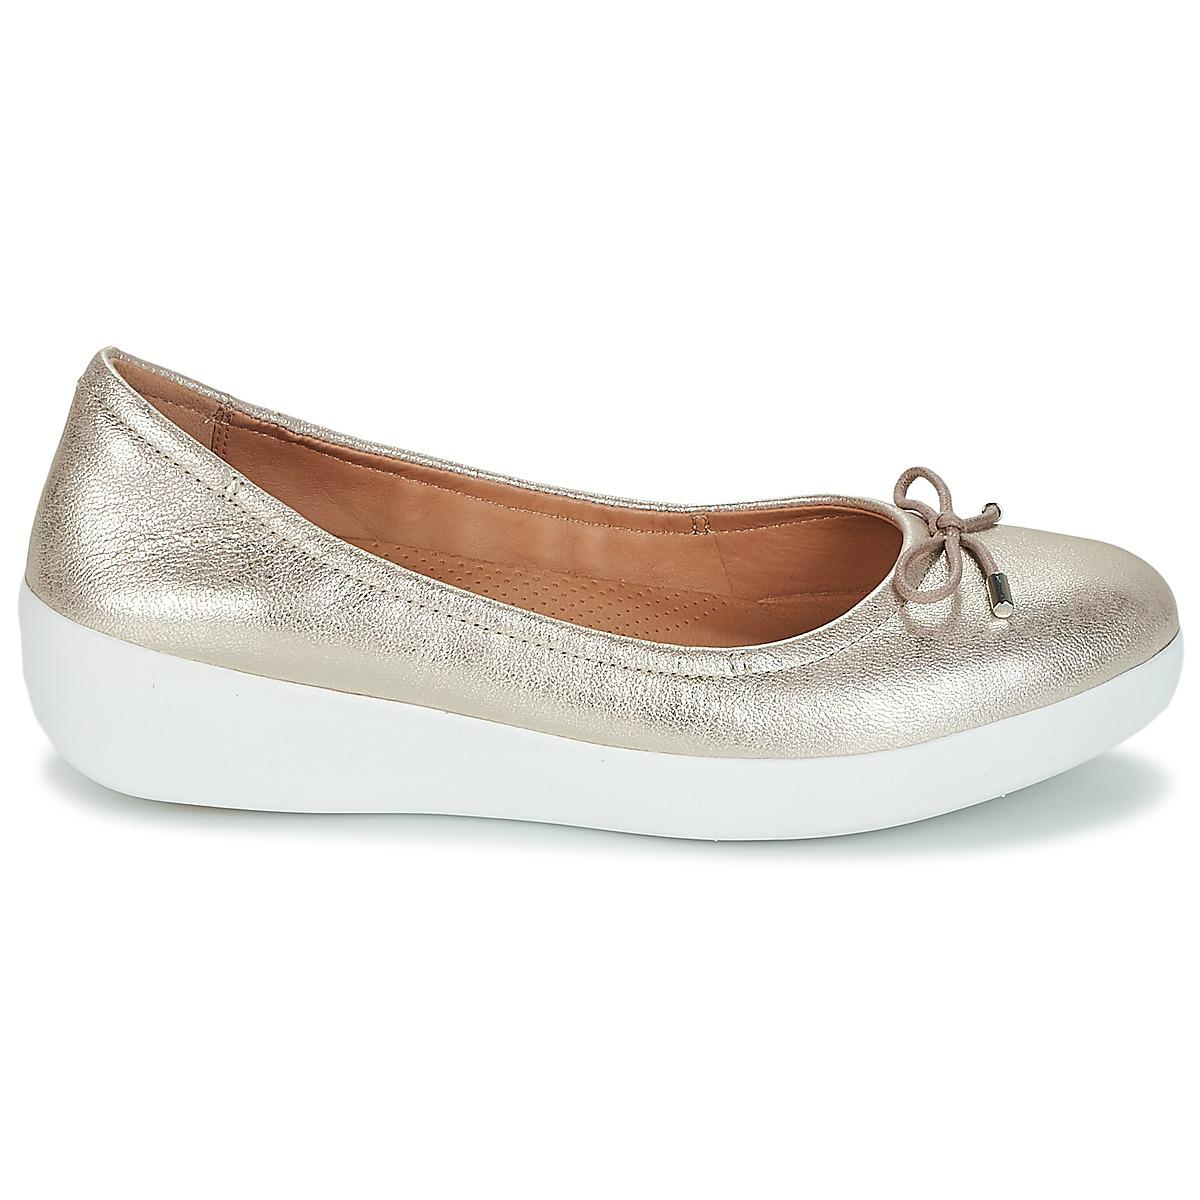 fd9c6fa6872 Fitflop - Metallic Superbendy Ballerinas Women s Shoes (pumps   Ballerinas)  In Silver - Lyst. View fullscreen